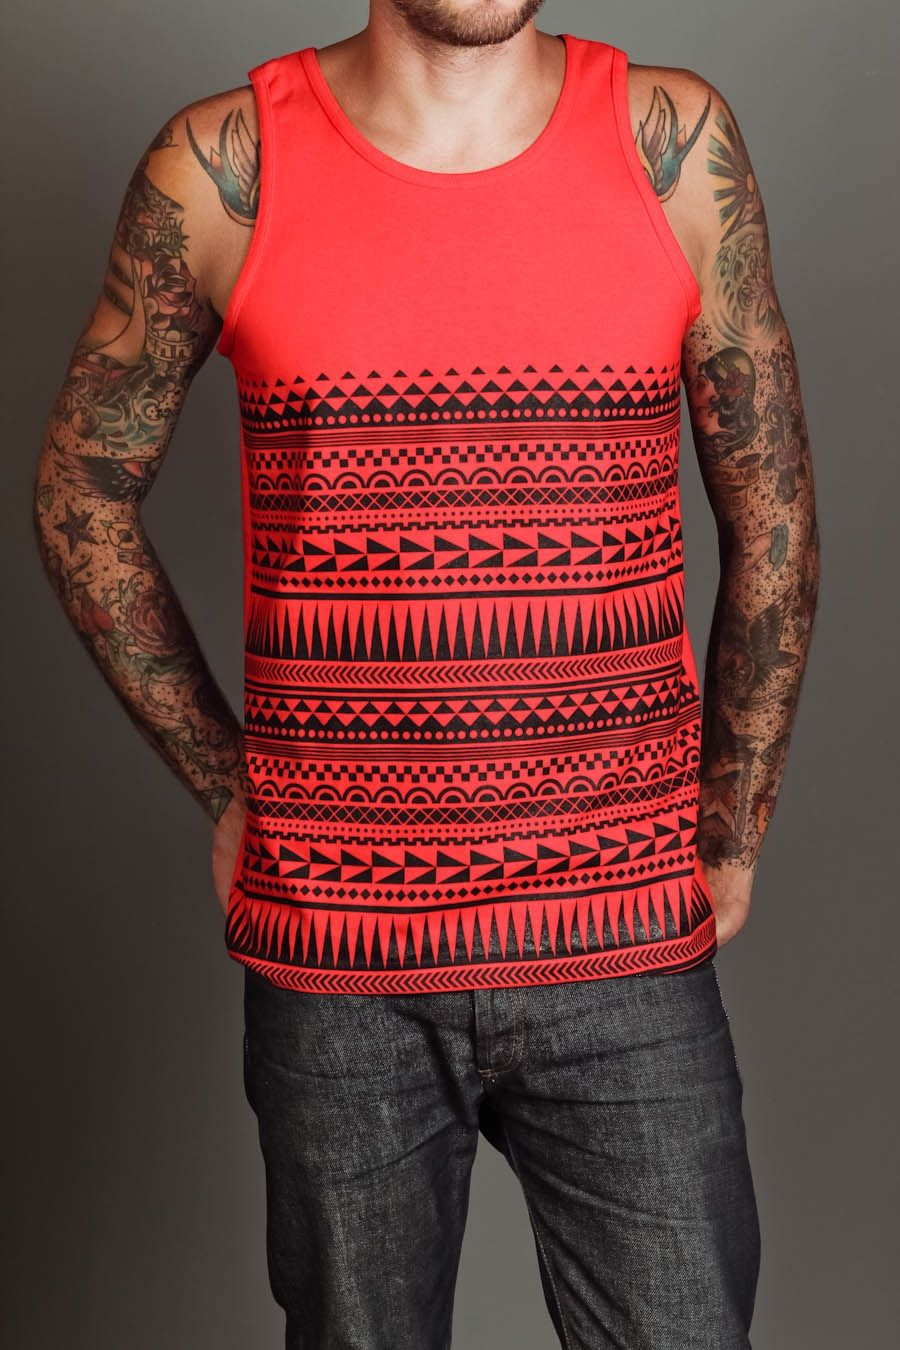 LTD Tees The Tribal Tank Red/Black $9 (With images ...